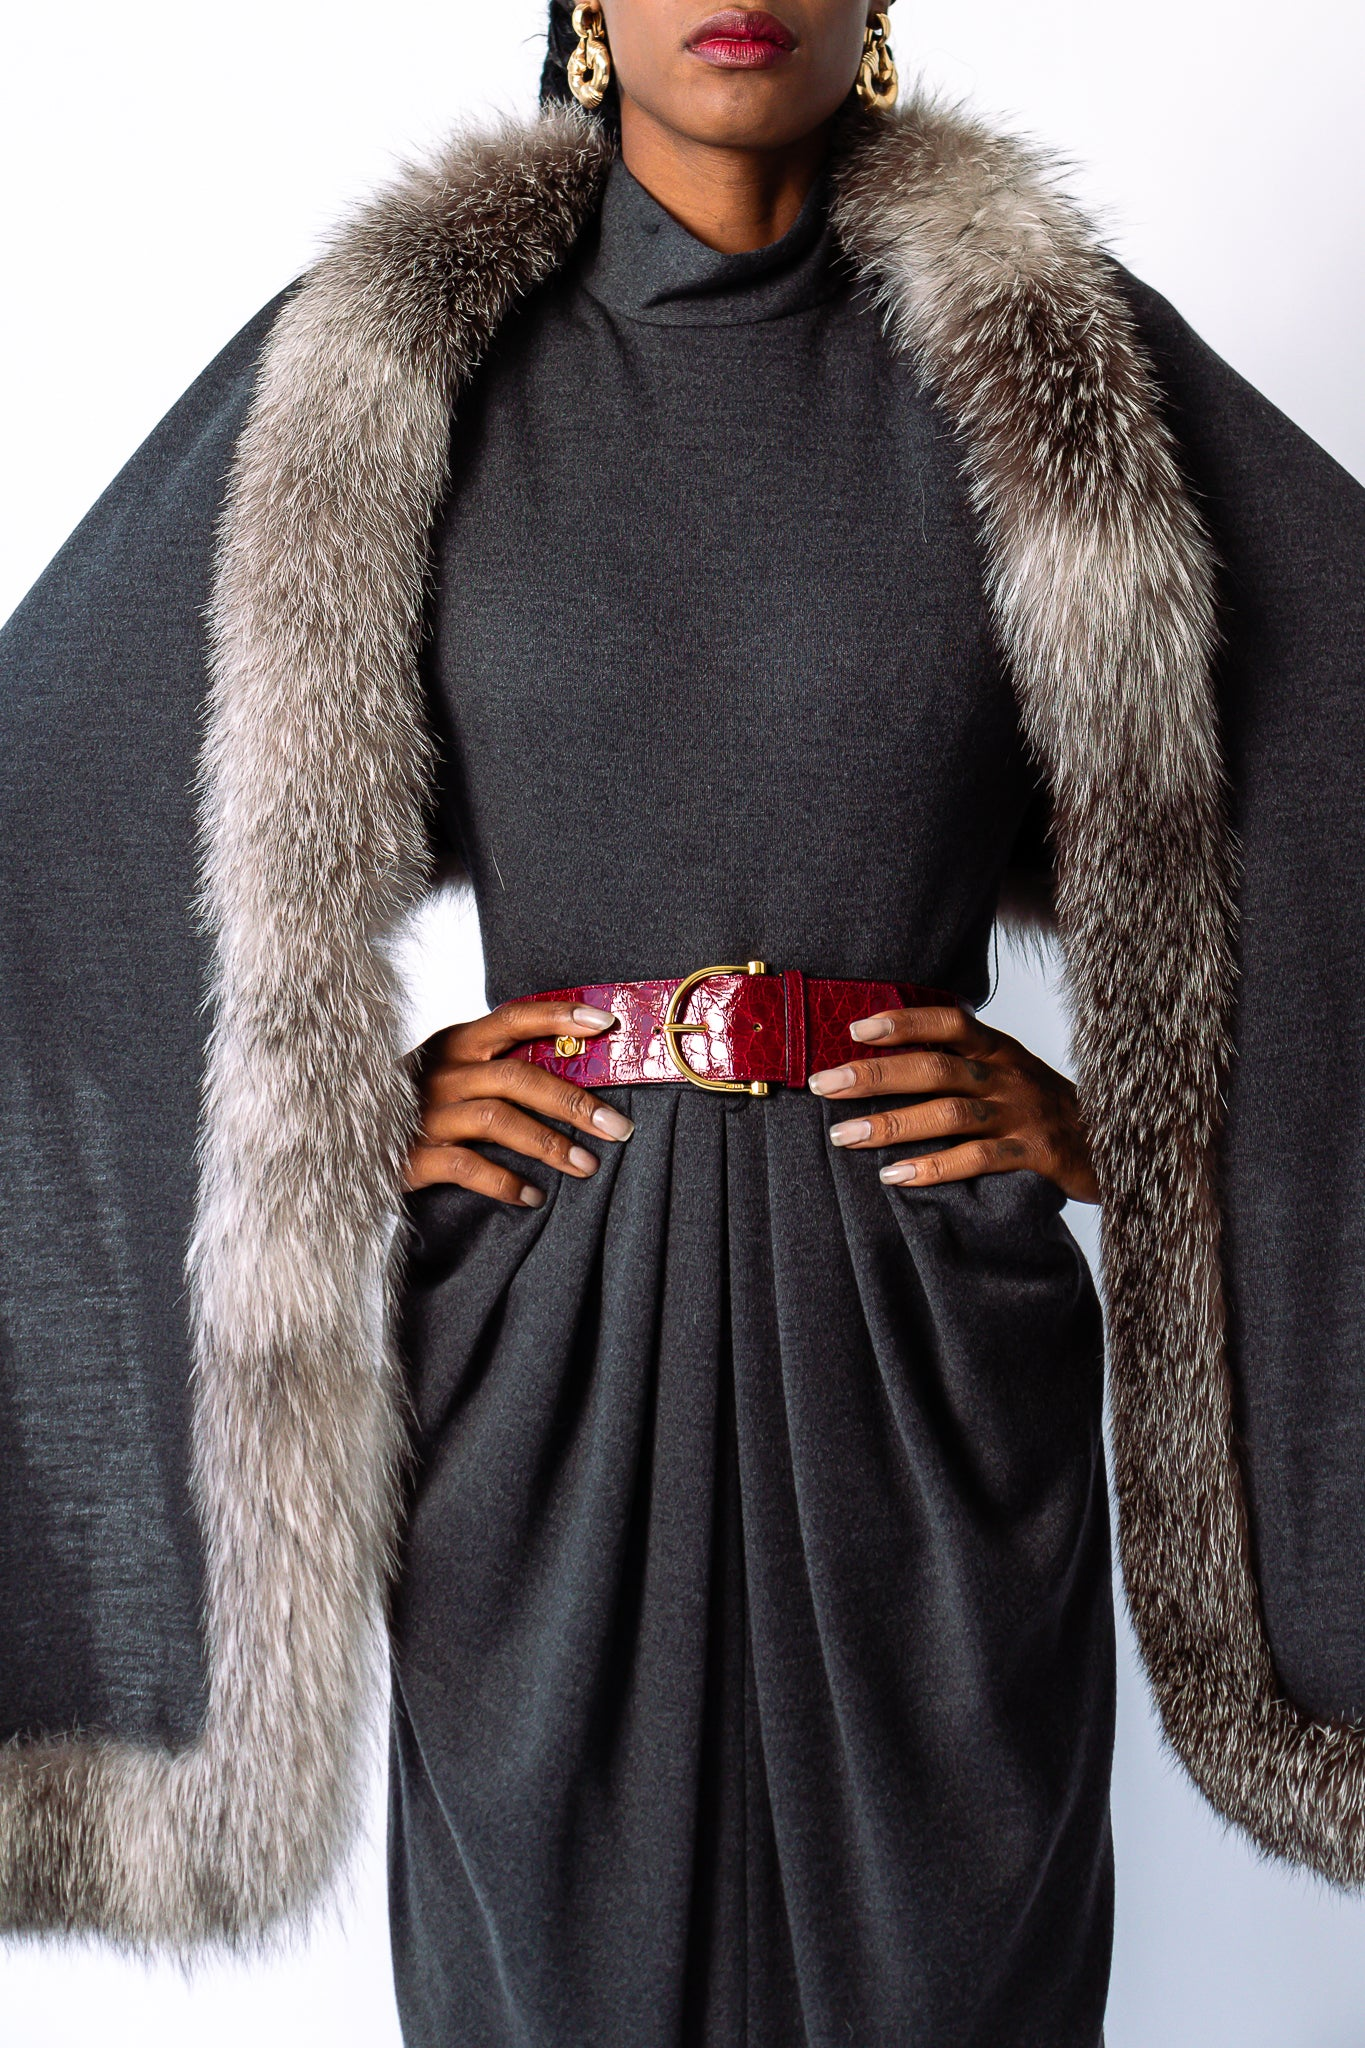 Girl in grey Victor Costa dress and fur shawl set with Cartier belt at Recess Los Angeles